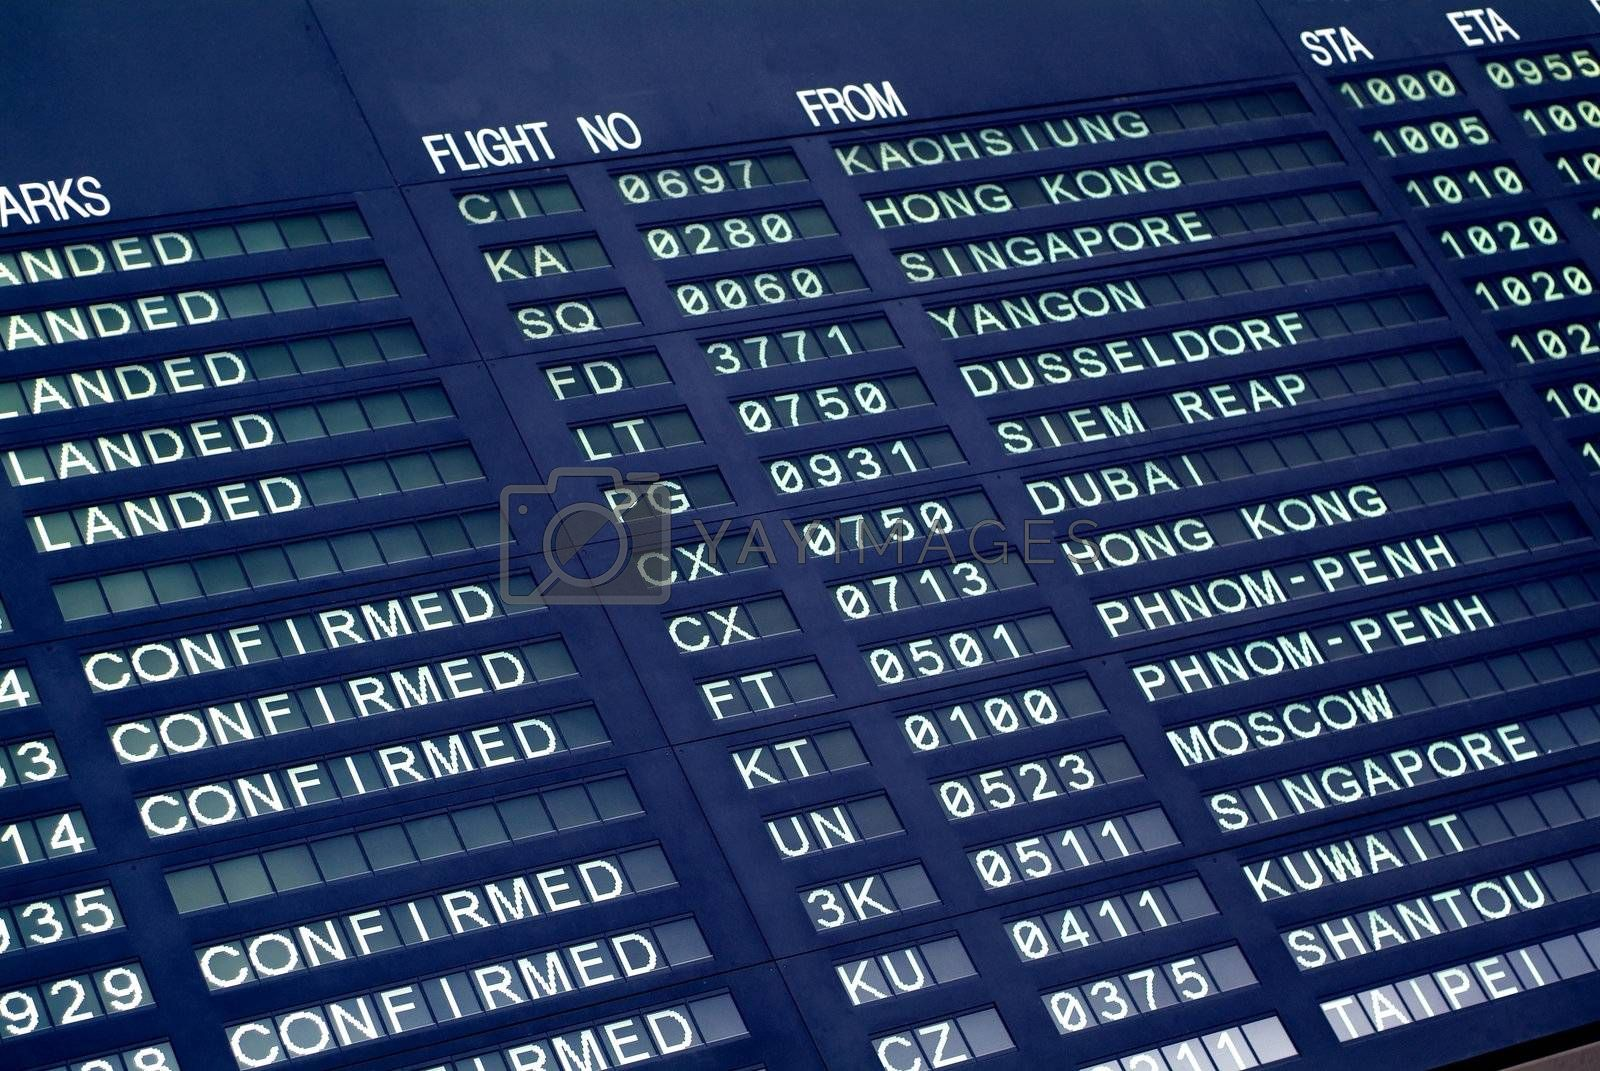 Arrival board at airport by epixx